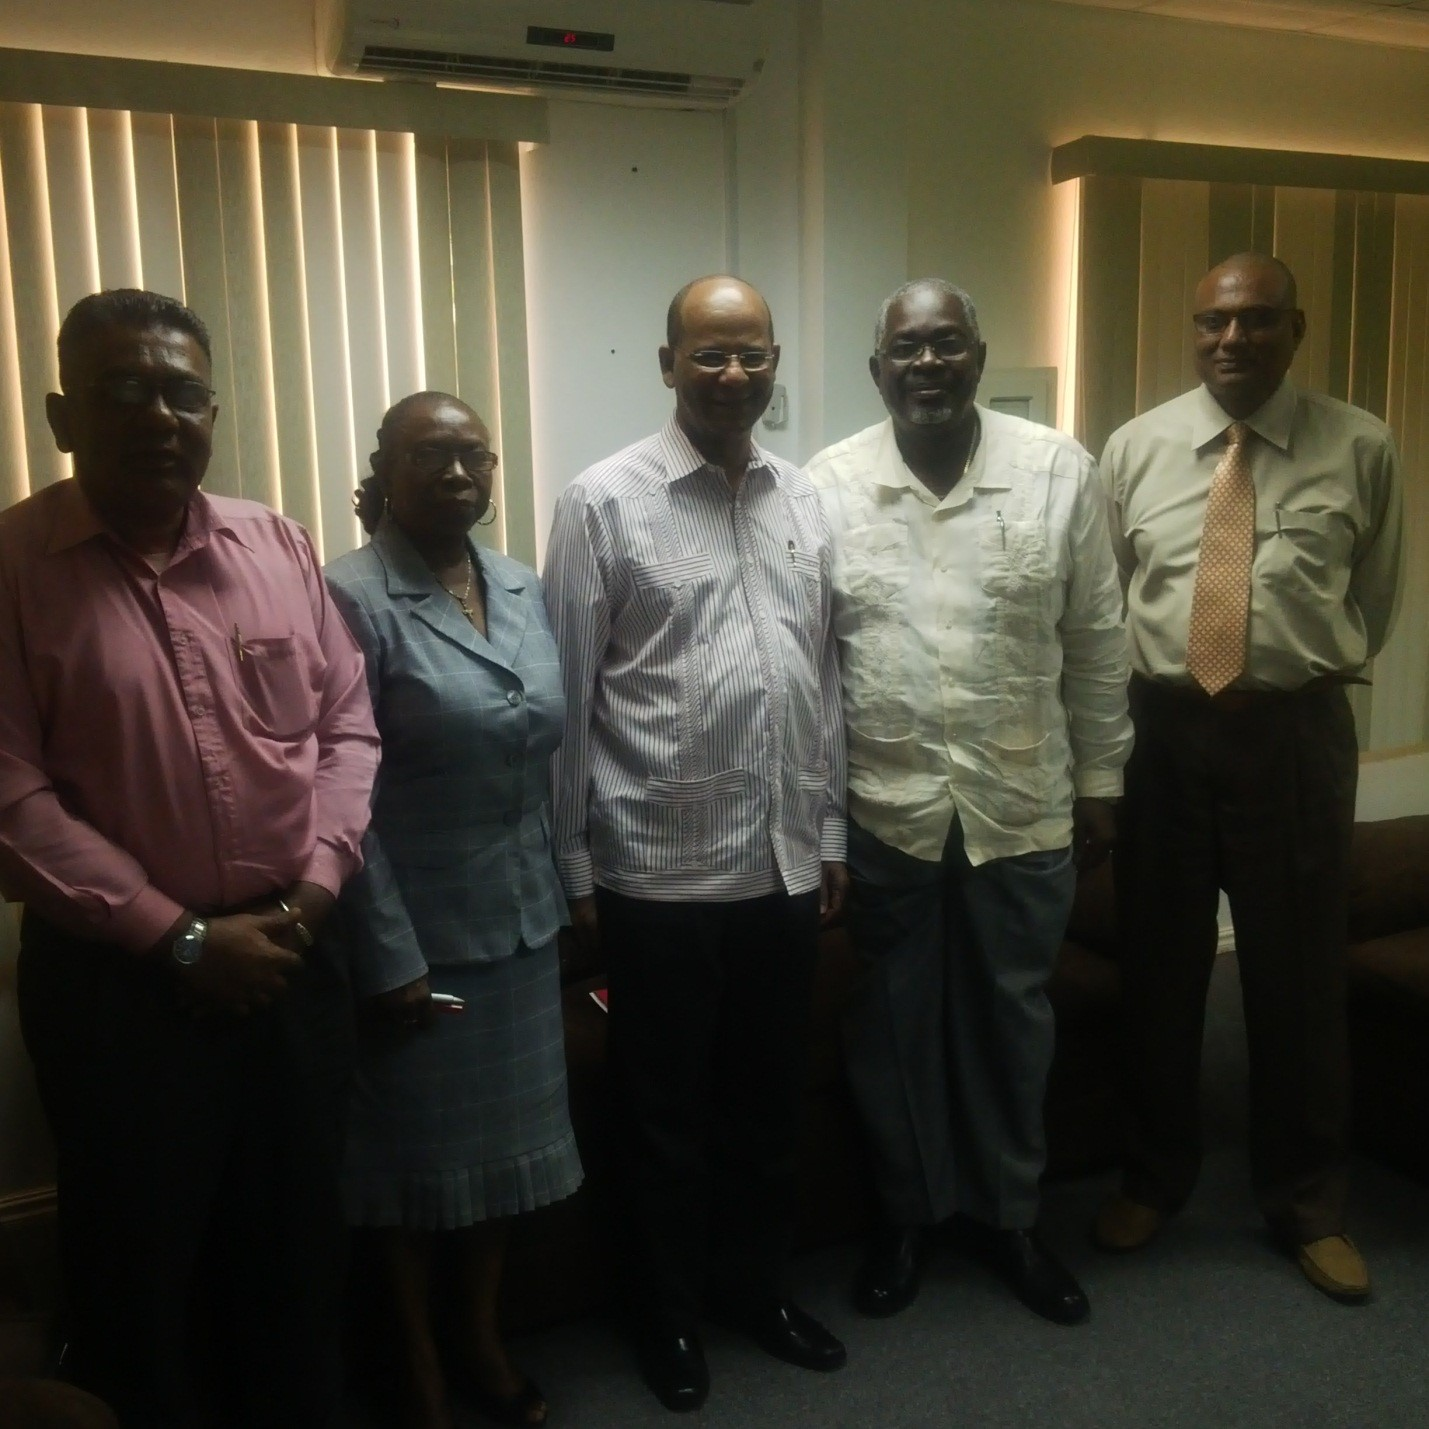 From left to right are PPP Executive Secretary Zulfikar Mustapha, GECOM's Beverly Critchlow, PPP General Secretary Clement Rohee, GECOM's CEO Keith Lowenfield and GECOM's Vishnu Persaud.